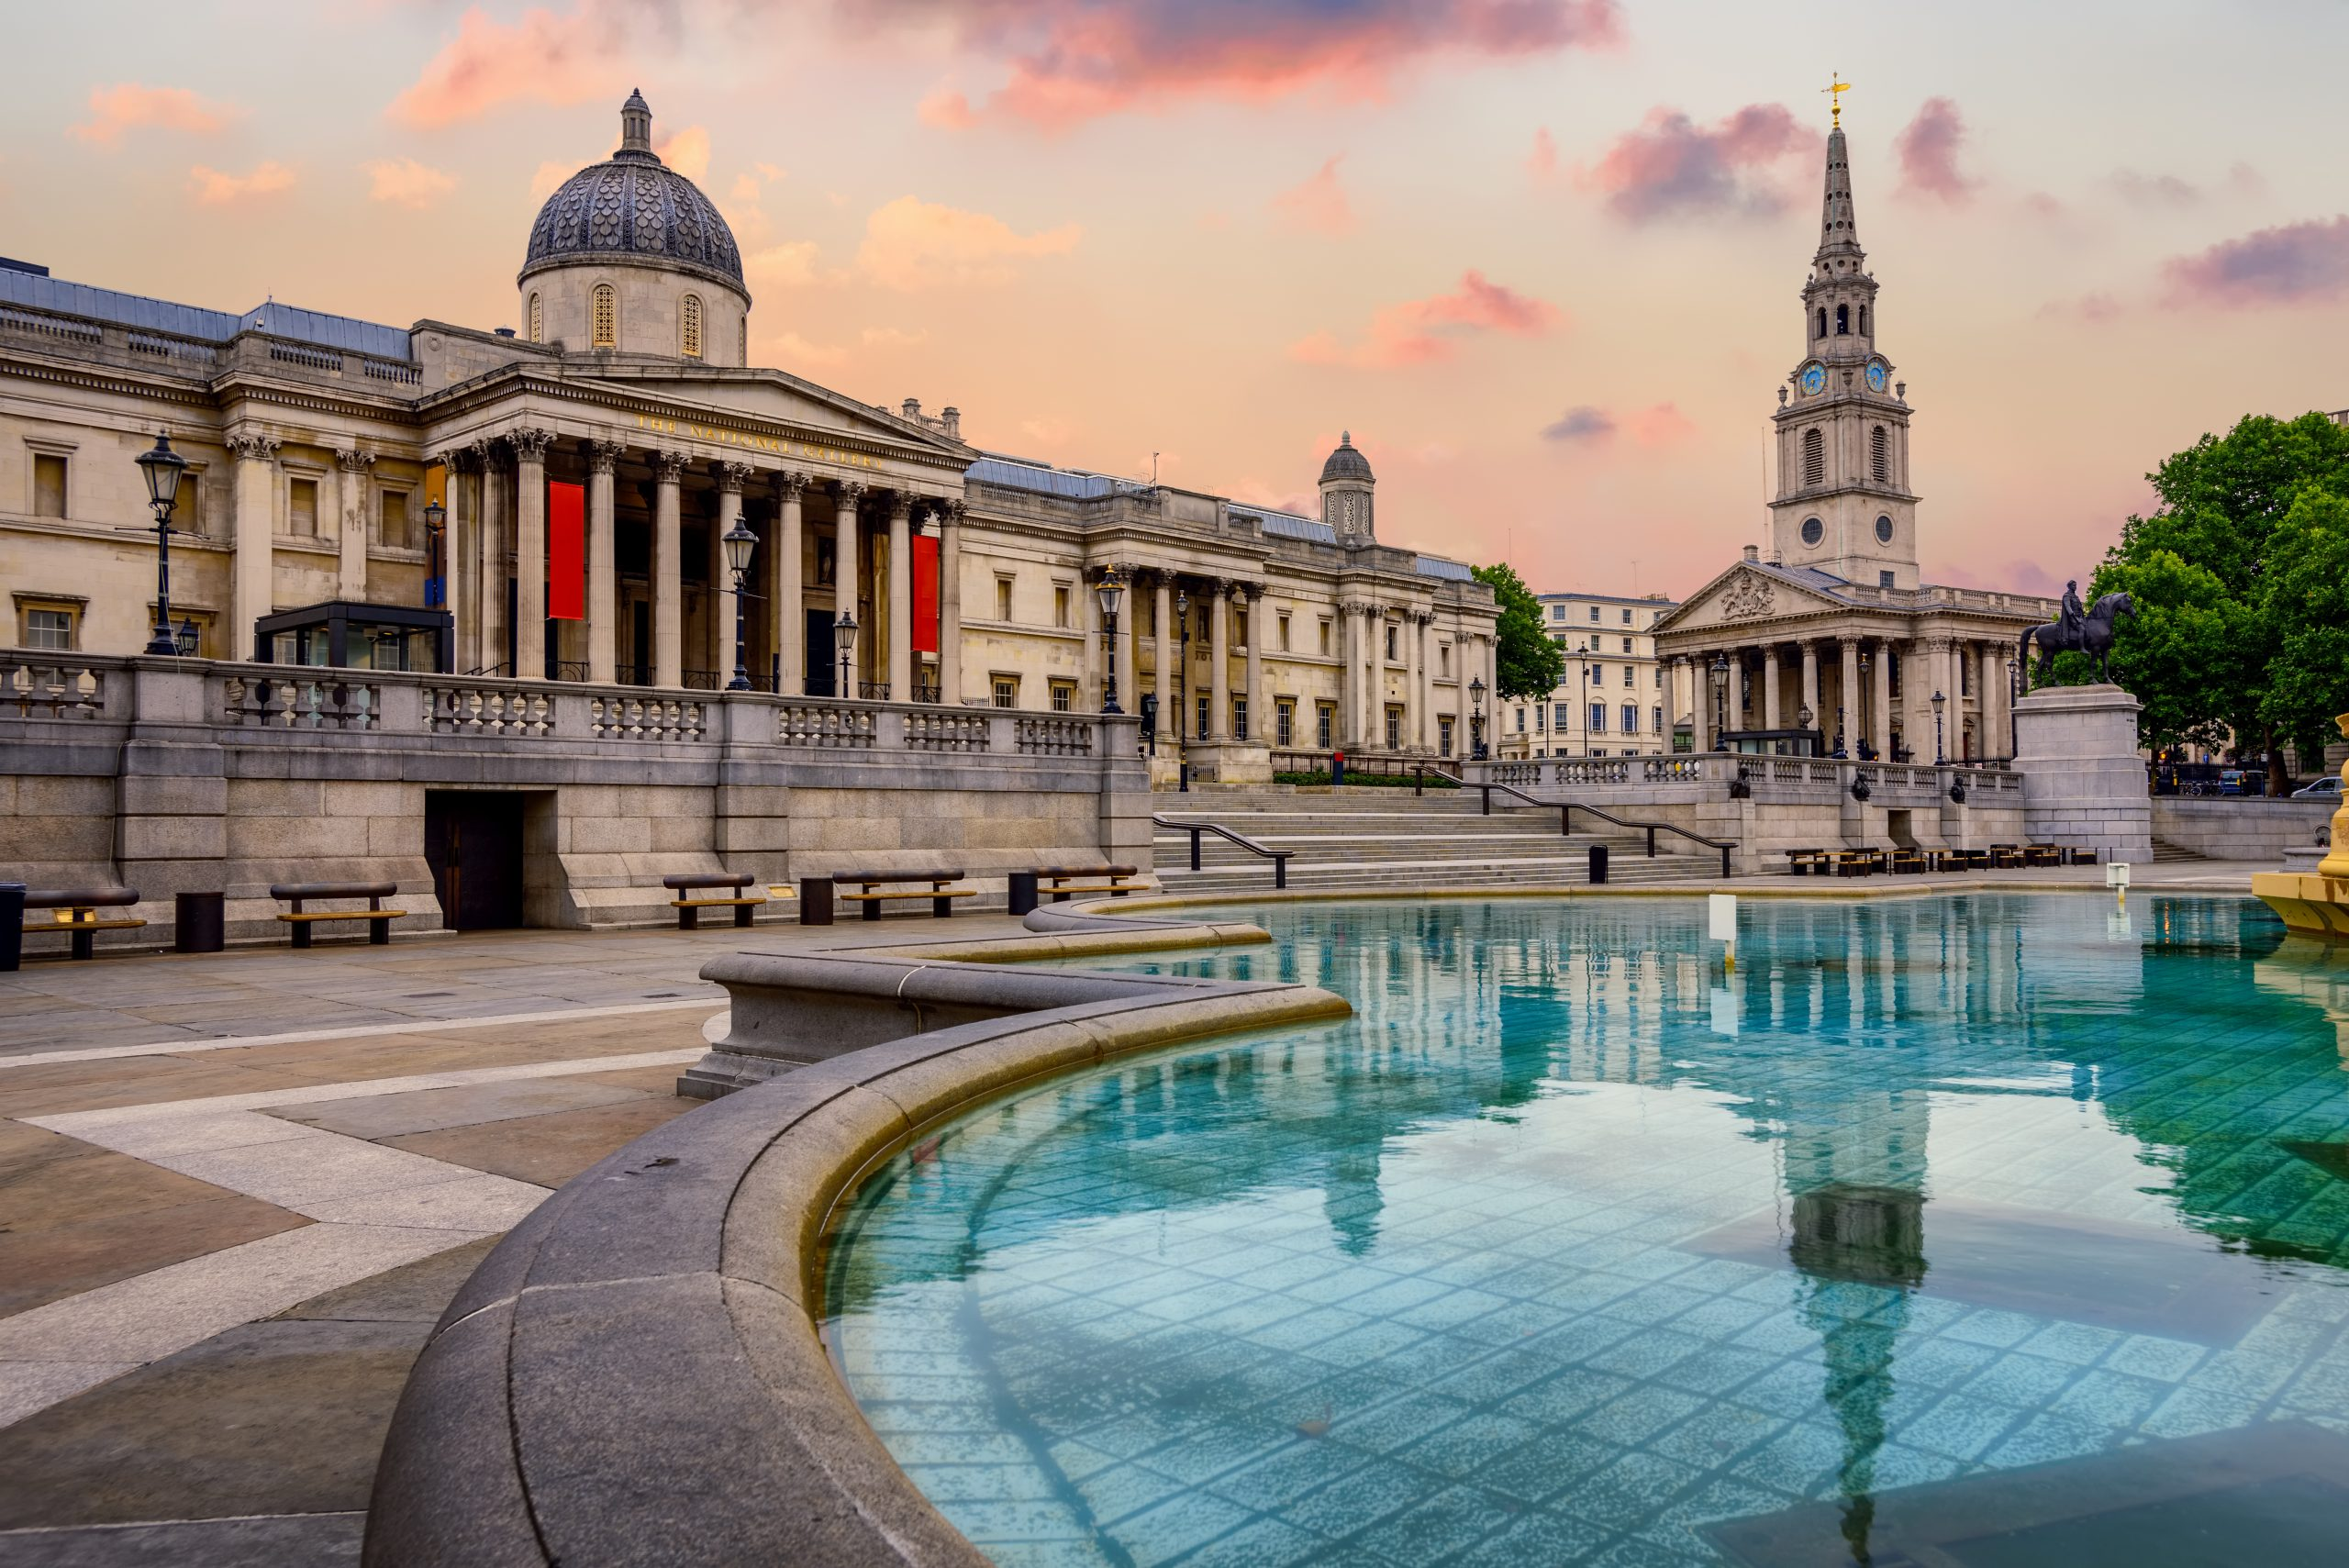 Your 5 days in London itinerary should have a visit to the National Gallery in it